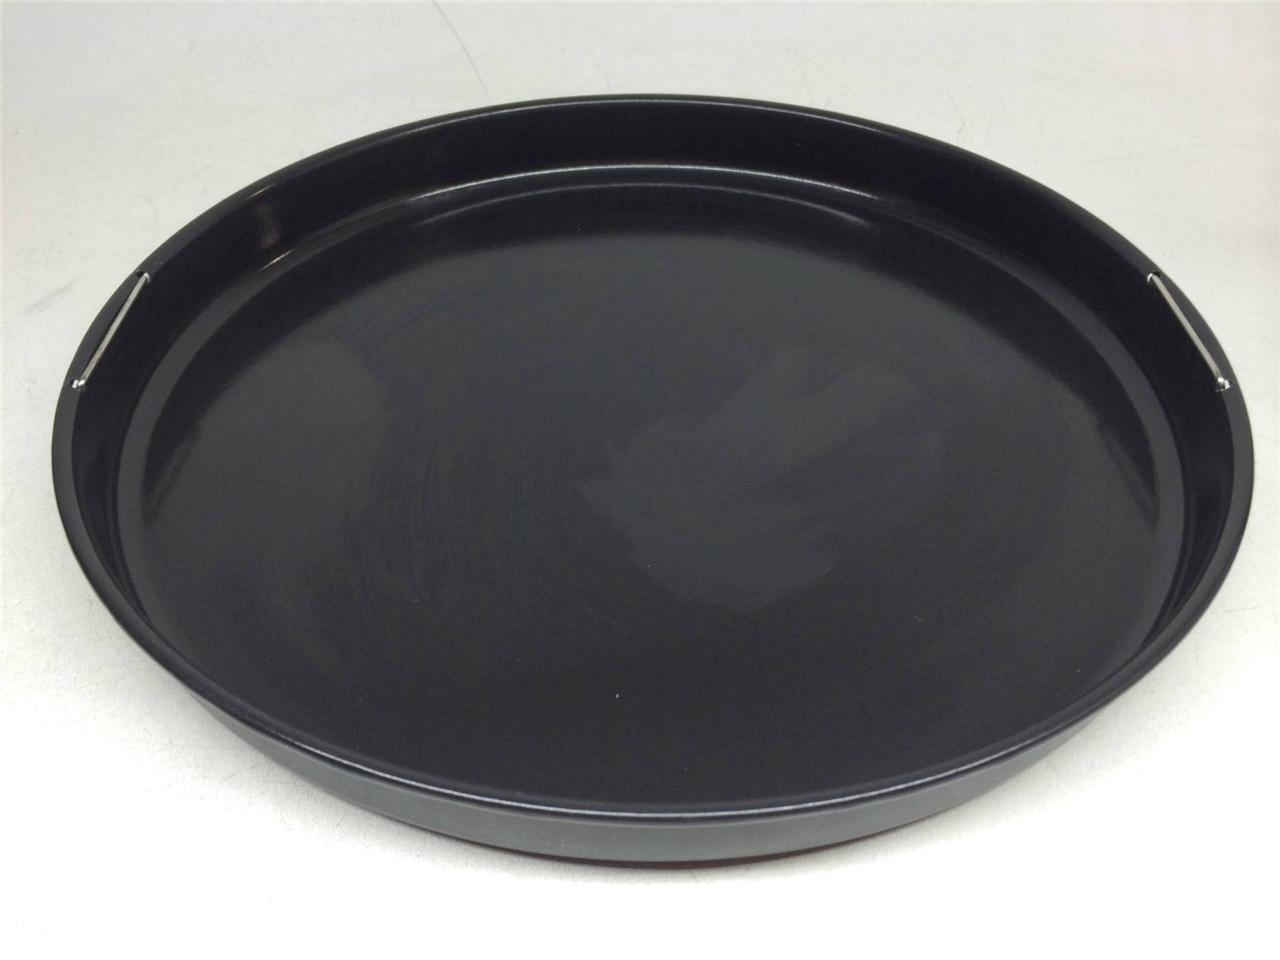 Drip Tray 13 Pan Replacement Part For Nuwave Pro Infrared